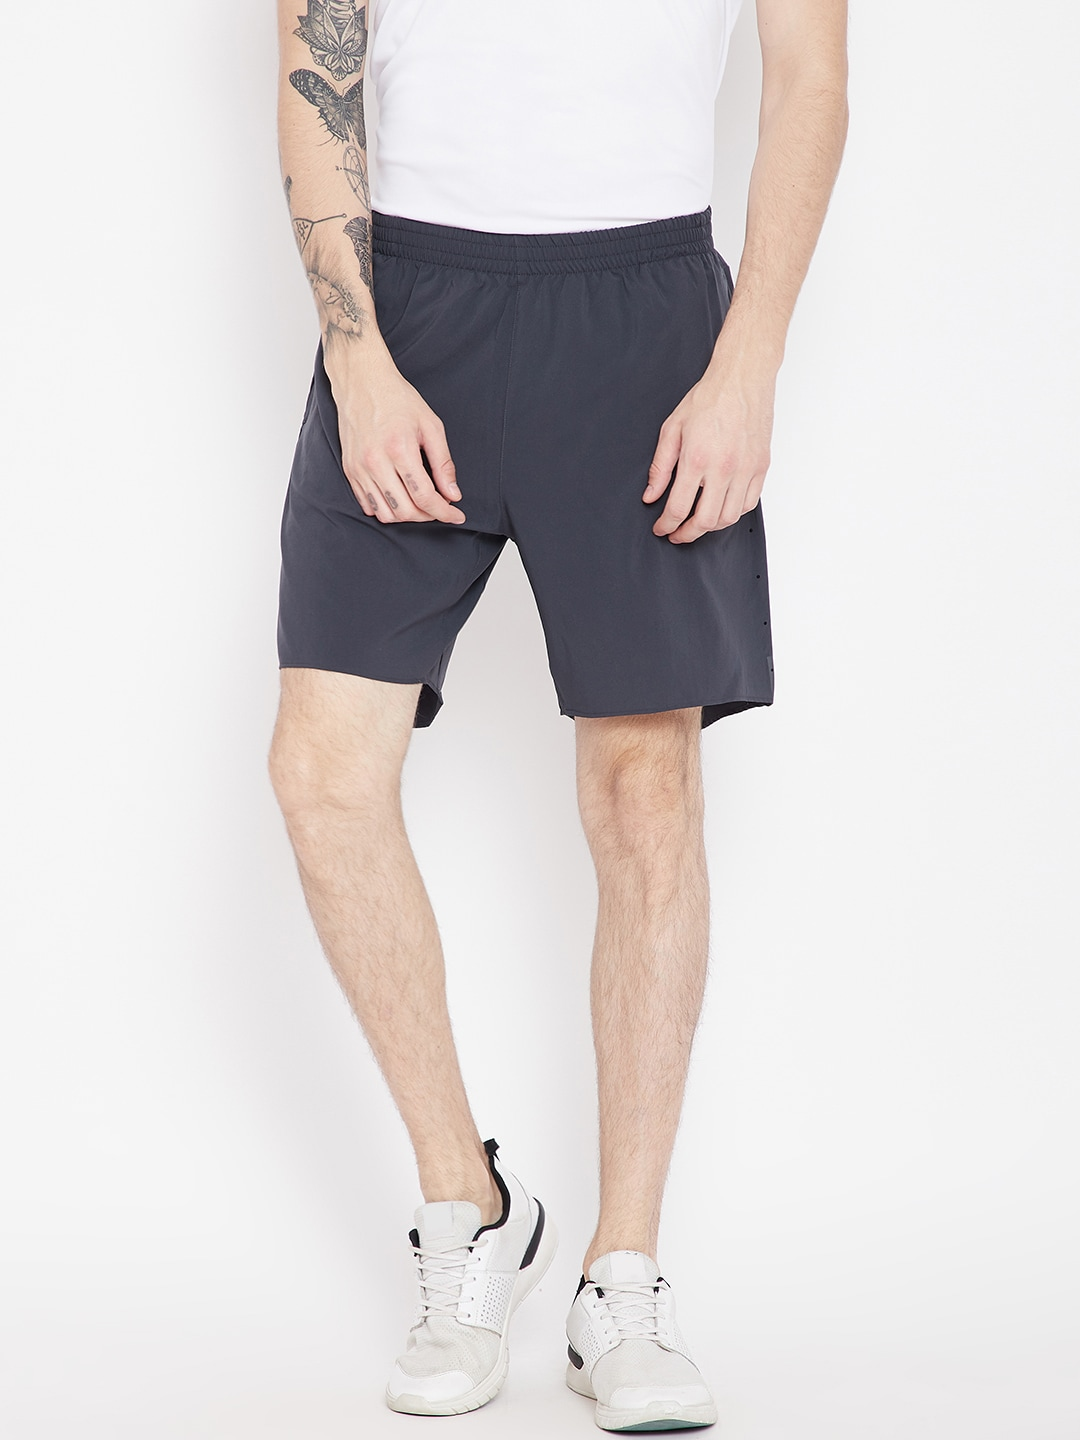 d90f0f92e Men Adidas Shorts - Buy Men Adidas Shorts online in India